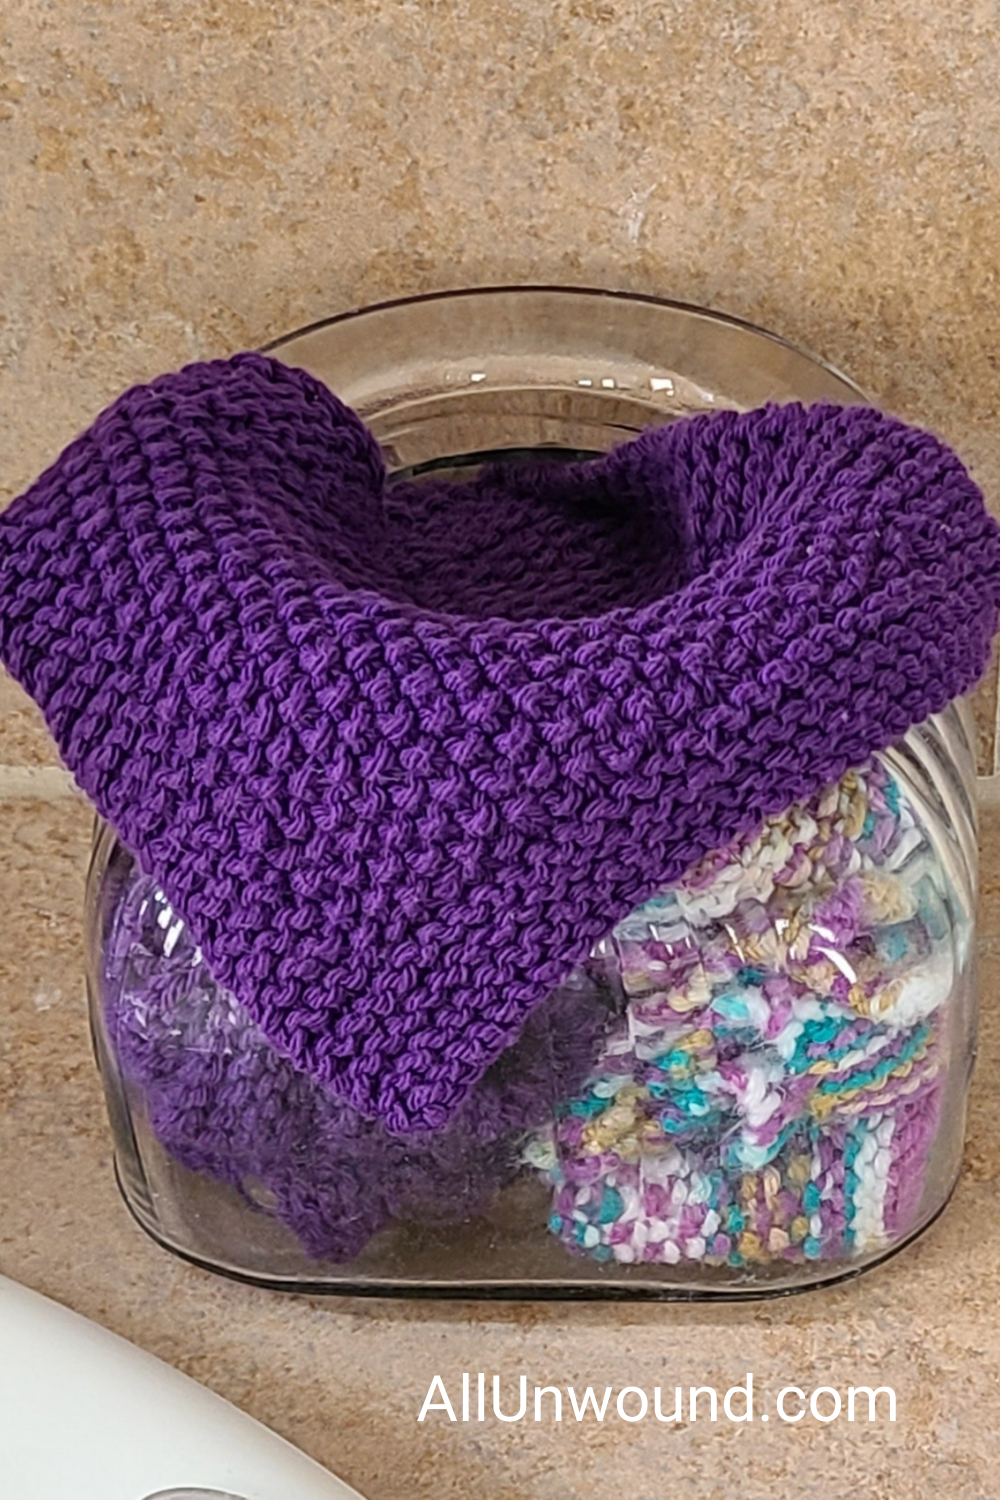 Jar with purple and multicolored hand knit spa washcloths AllUnwound.com